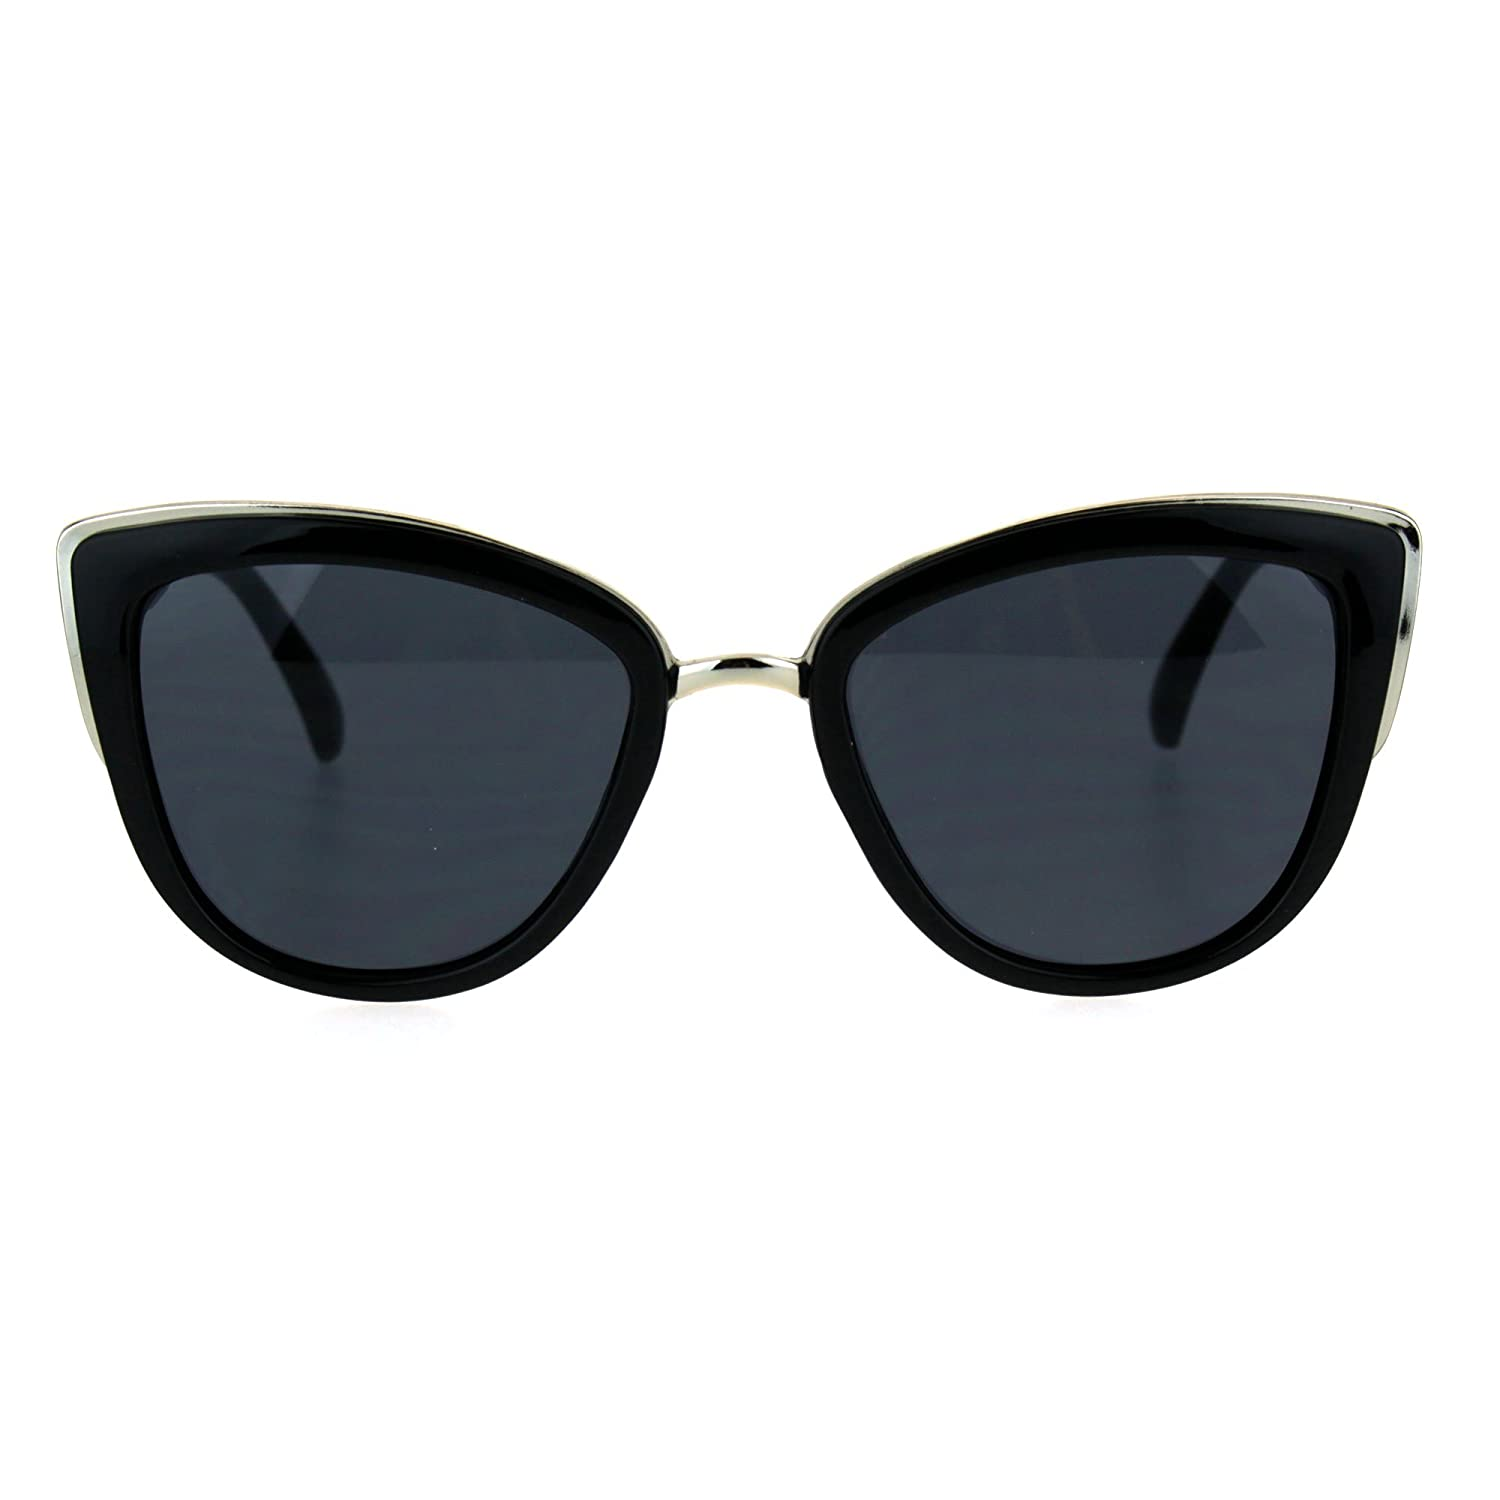 37f203882b8 Amazon.com  SA106 Runway Fashion Metal Bridge Trim Oversized Cat Eye  Sunglasses All Black  Clothing